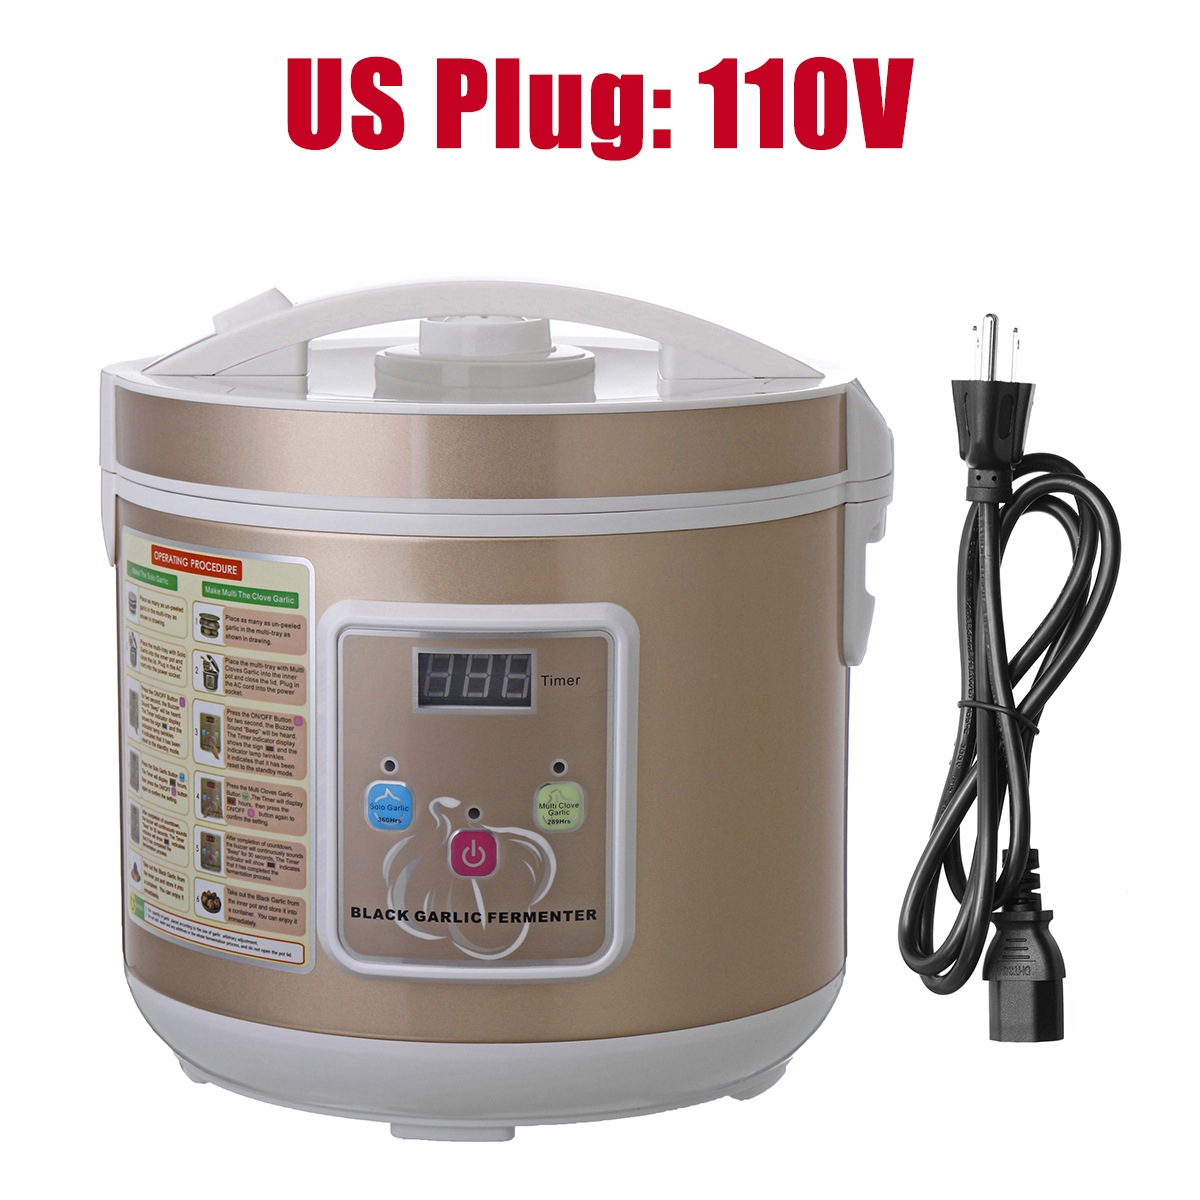 110V 90W 5L 12-15 Days Intelligent Black Garlic Fermenter Automatic Fermentation Machine by